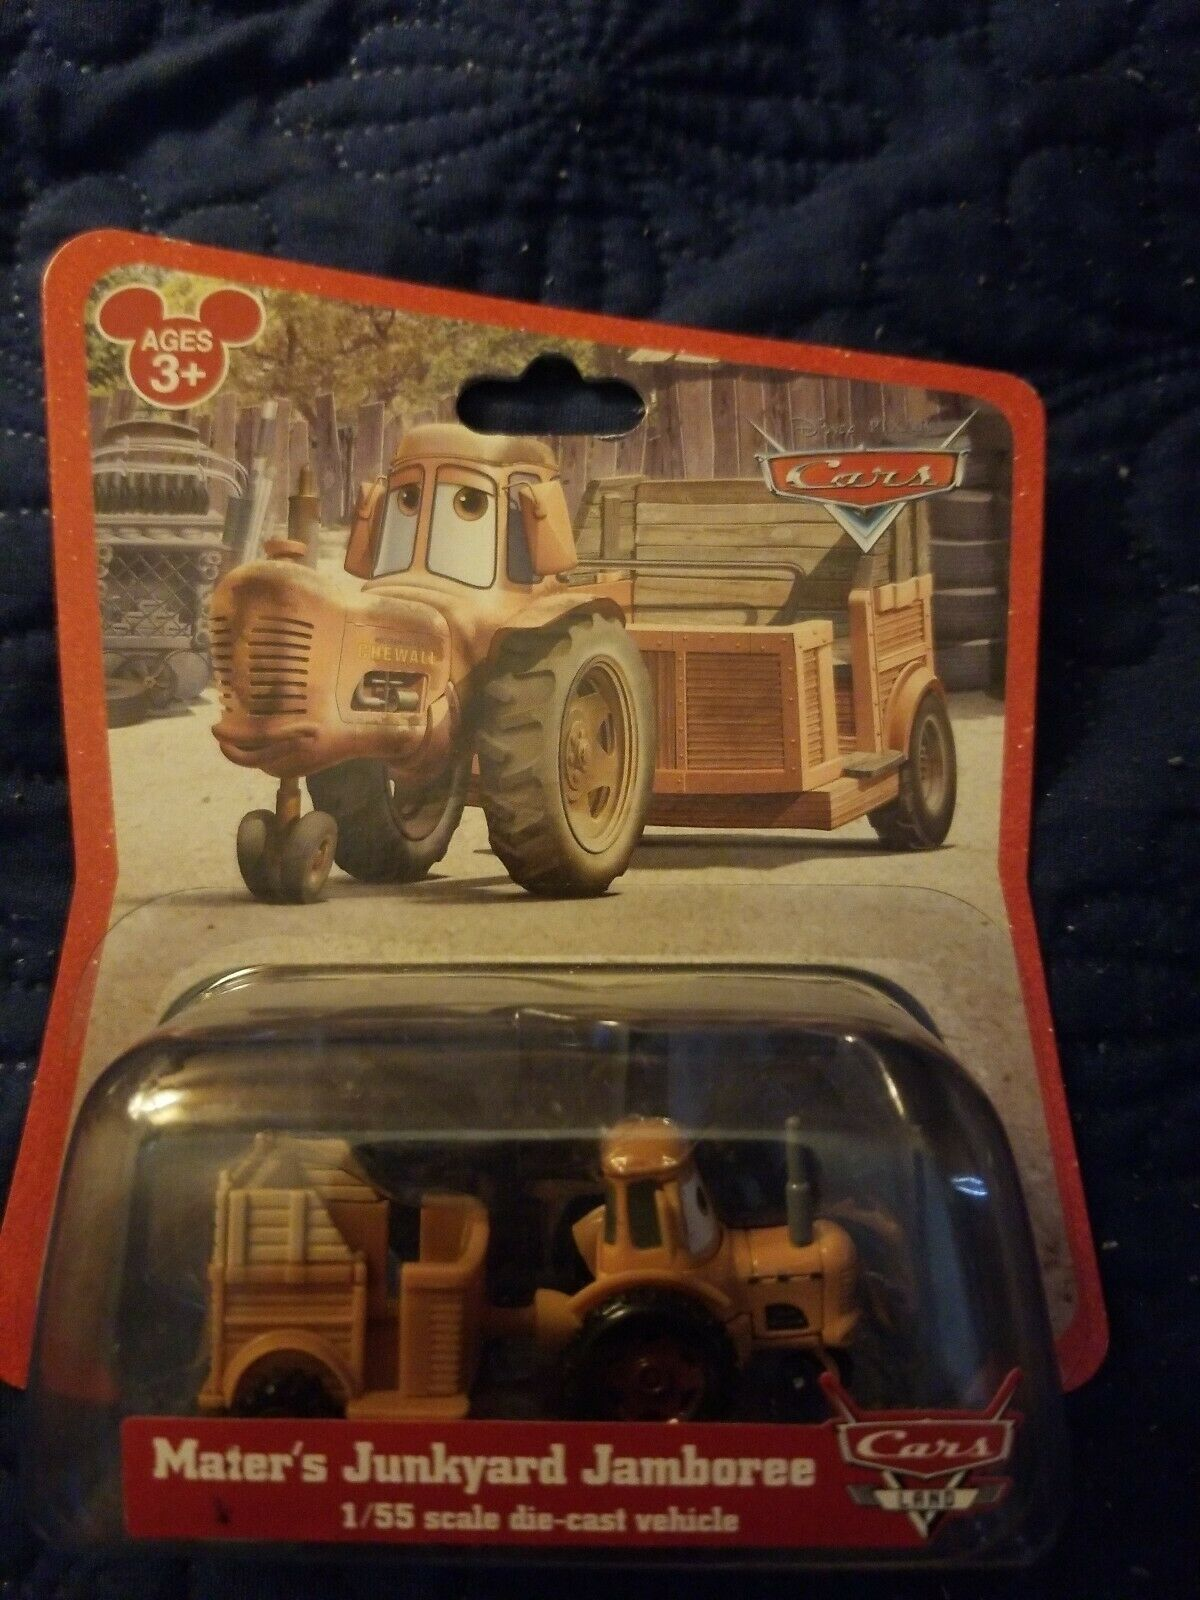 Disney Pixar Cars Land - Mater's Junkyard Jamboree - NEW - 2012 - 1:55 scale